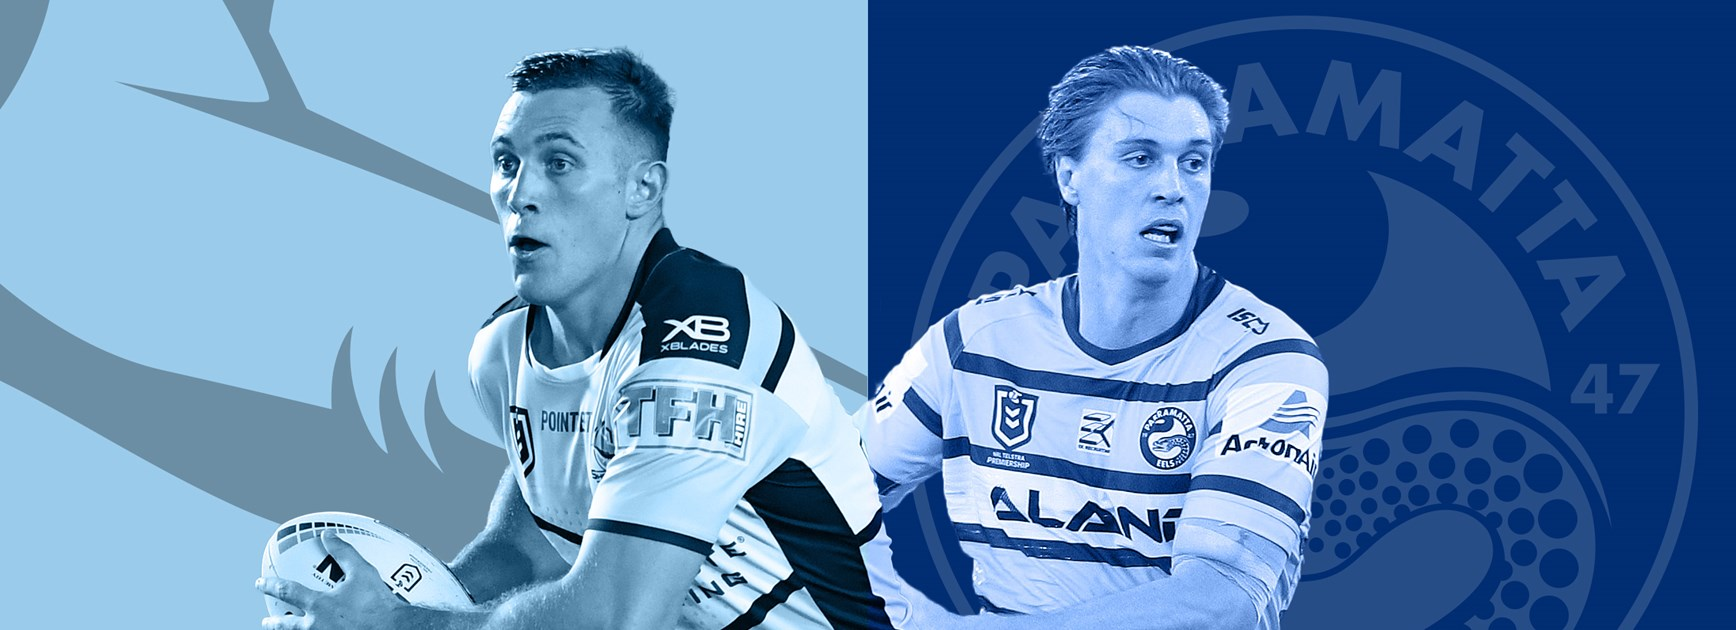 Match Preview: Sharks v Eels, Round 13